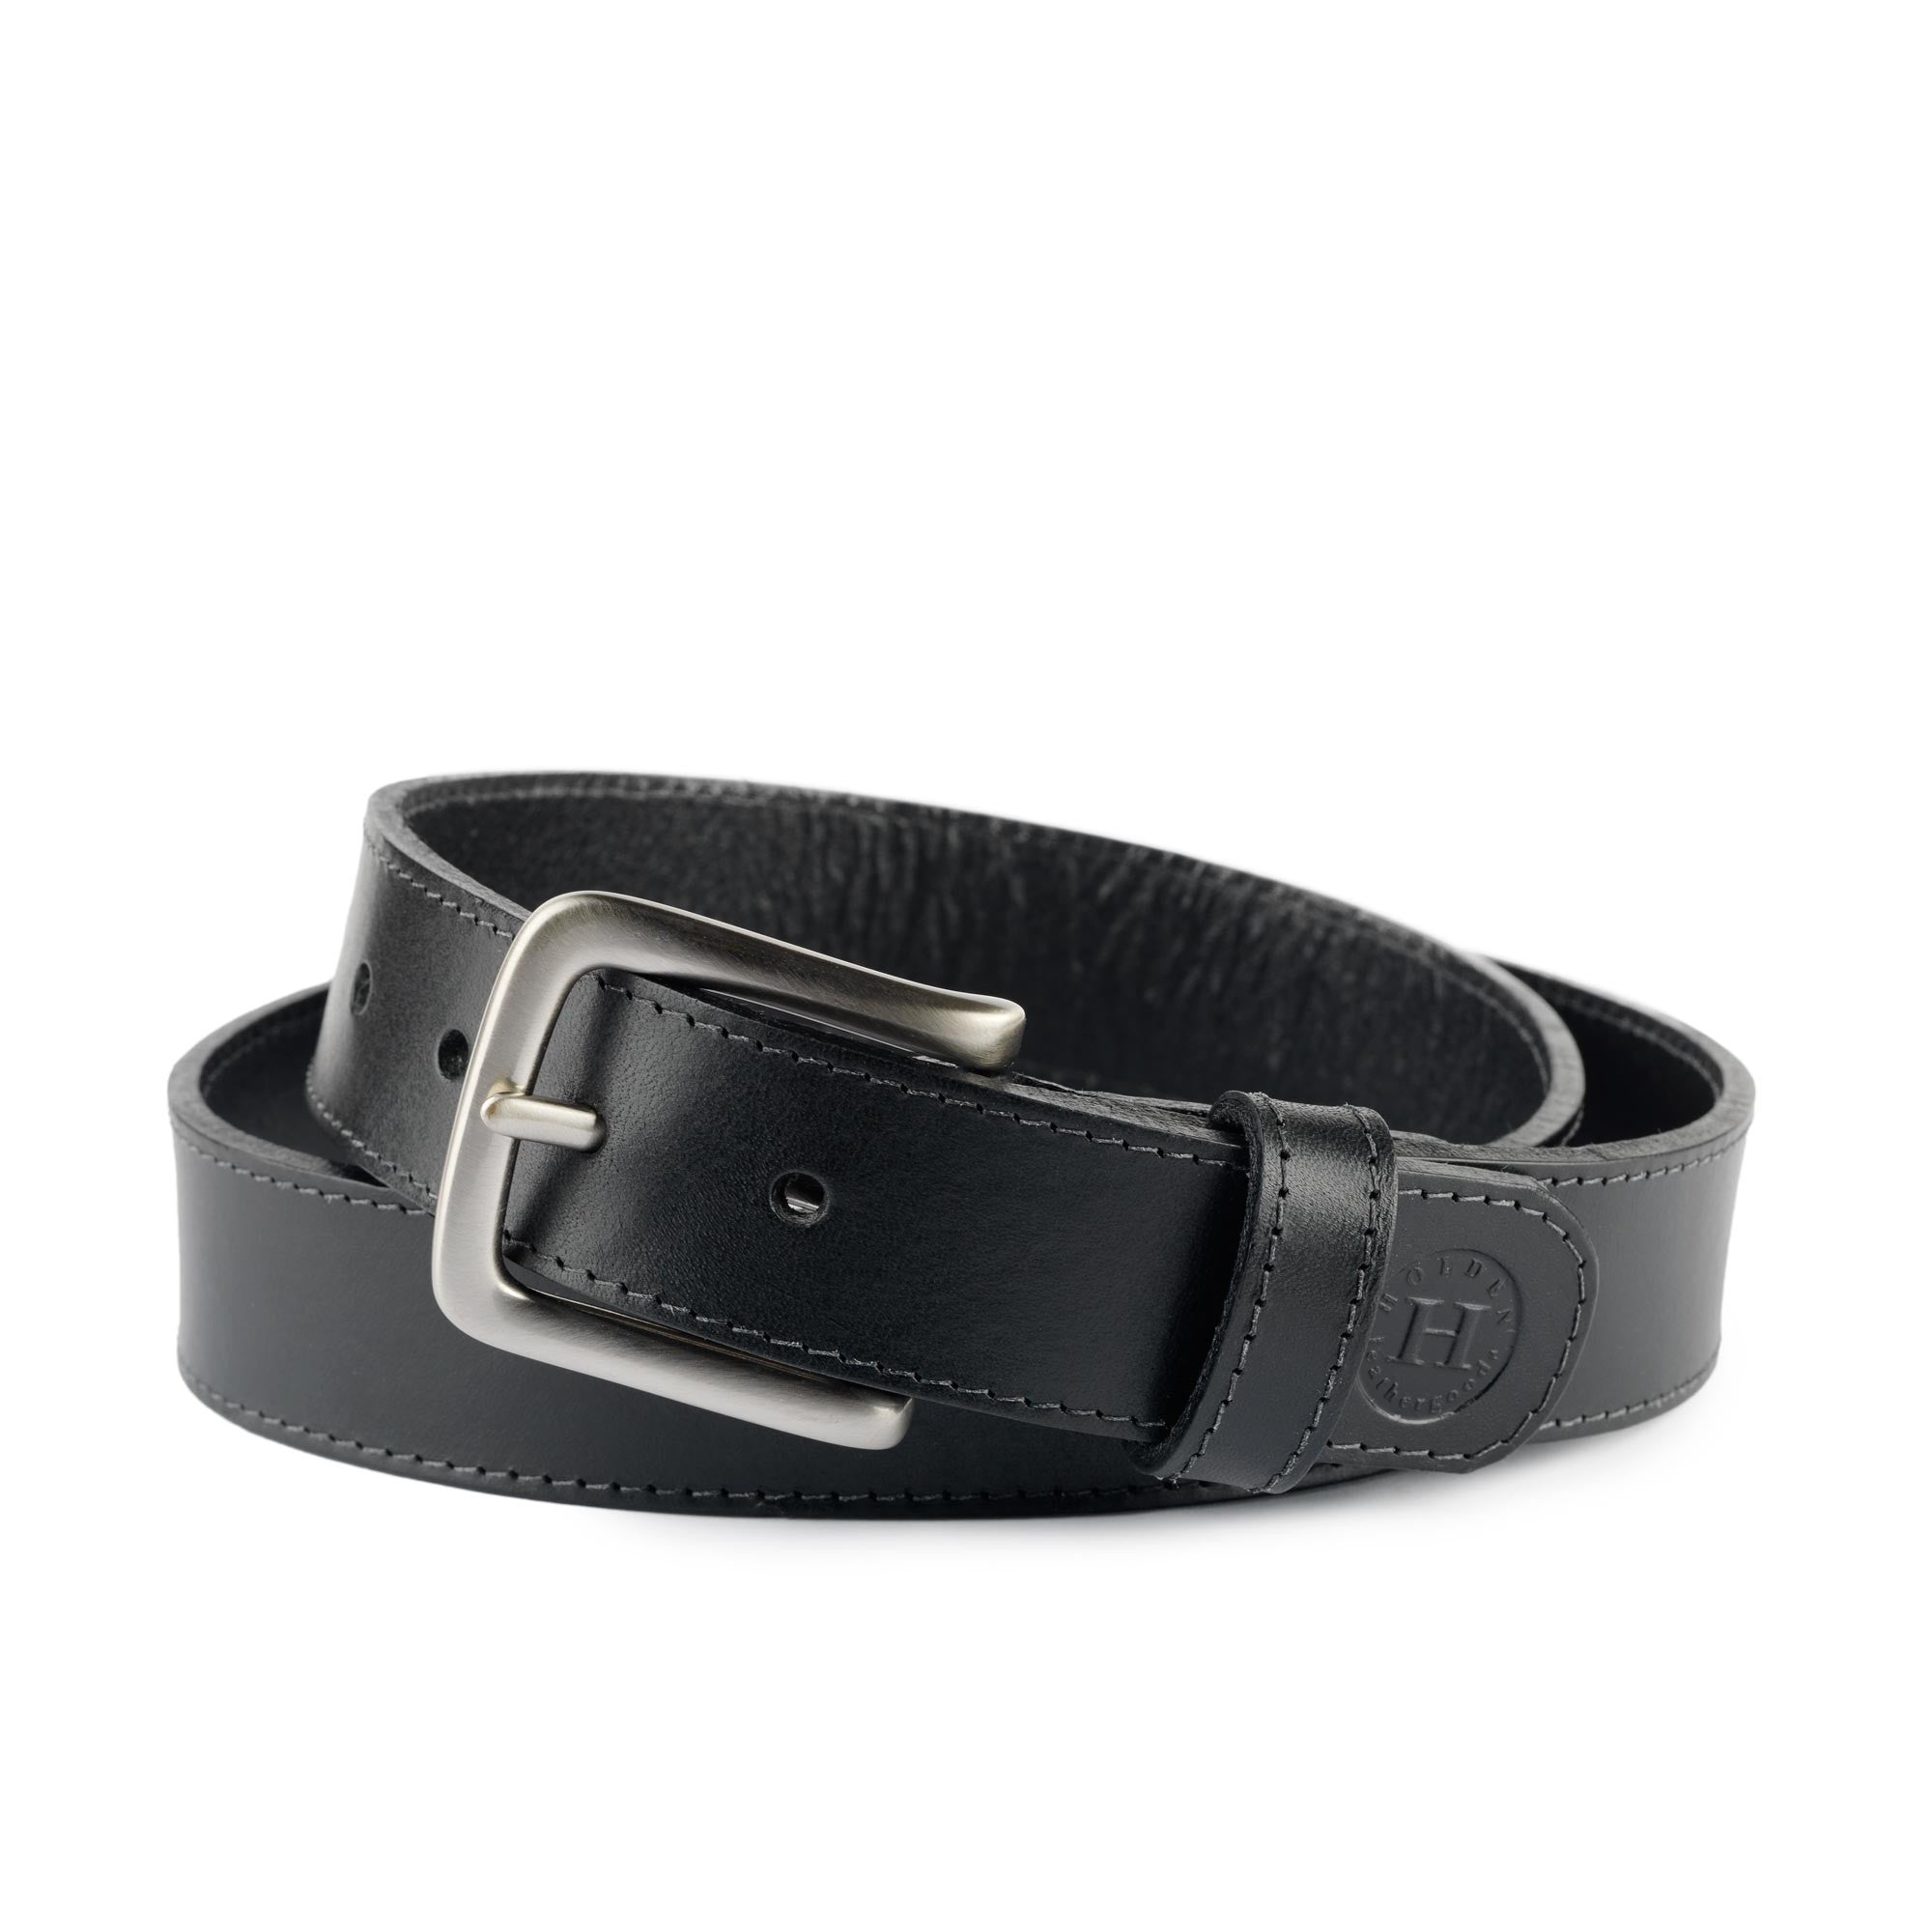 Holden Casual Leather Belt CB2 Black - Holden Leathergoods, leather bags handmade in Ireland